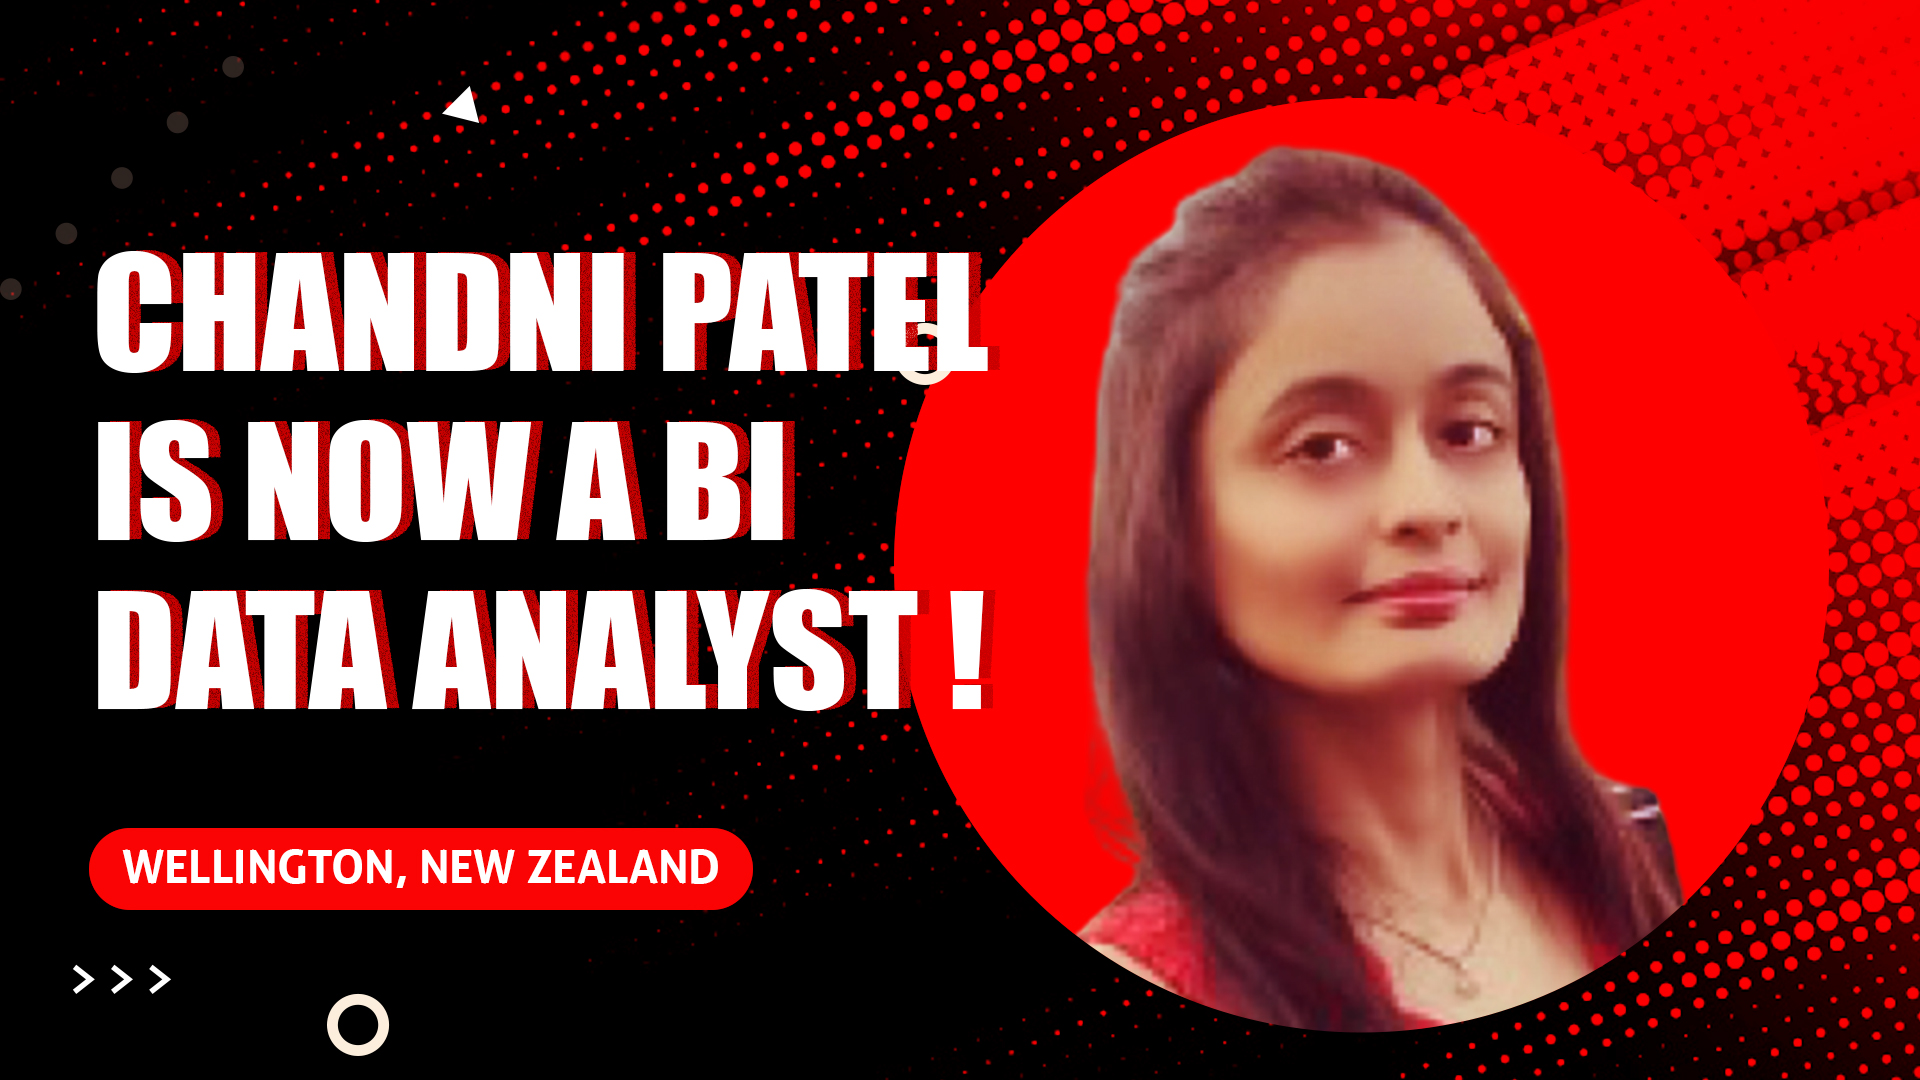 Chandni Patel is now a BI Data Analyst thanks to us!